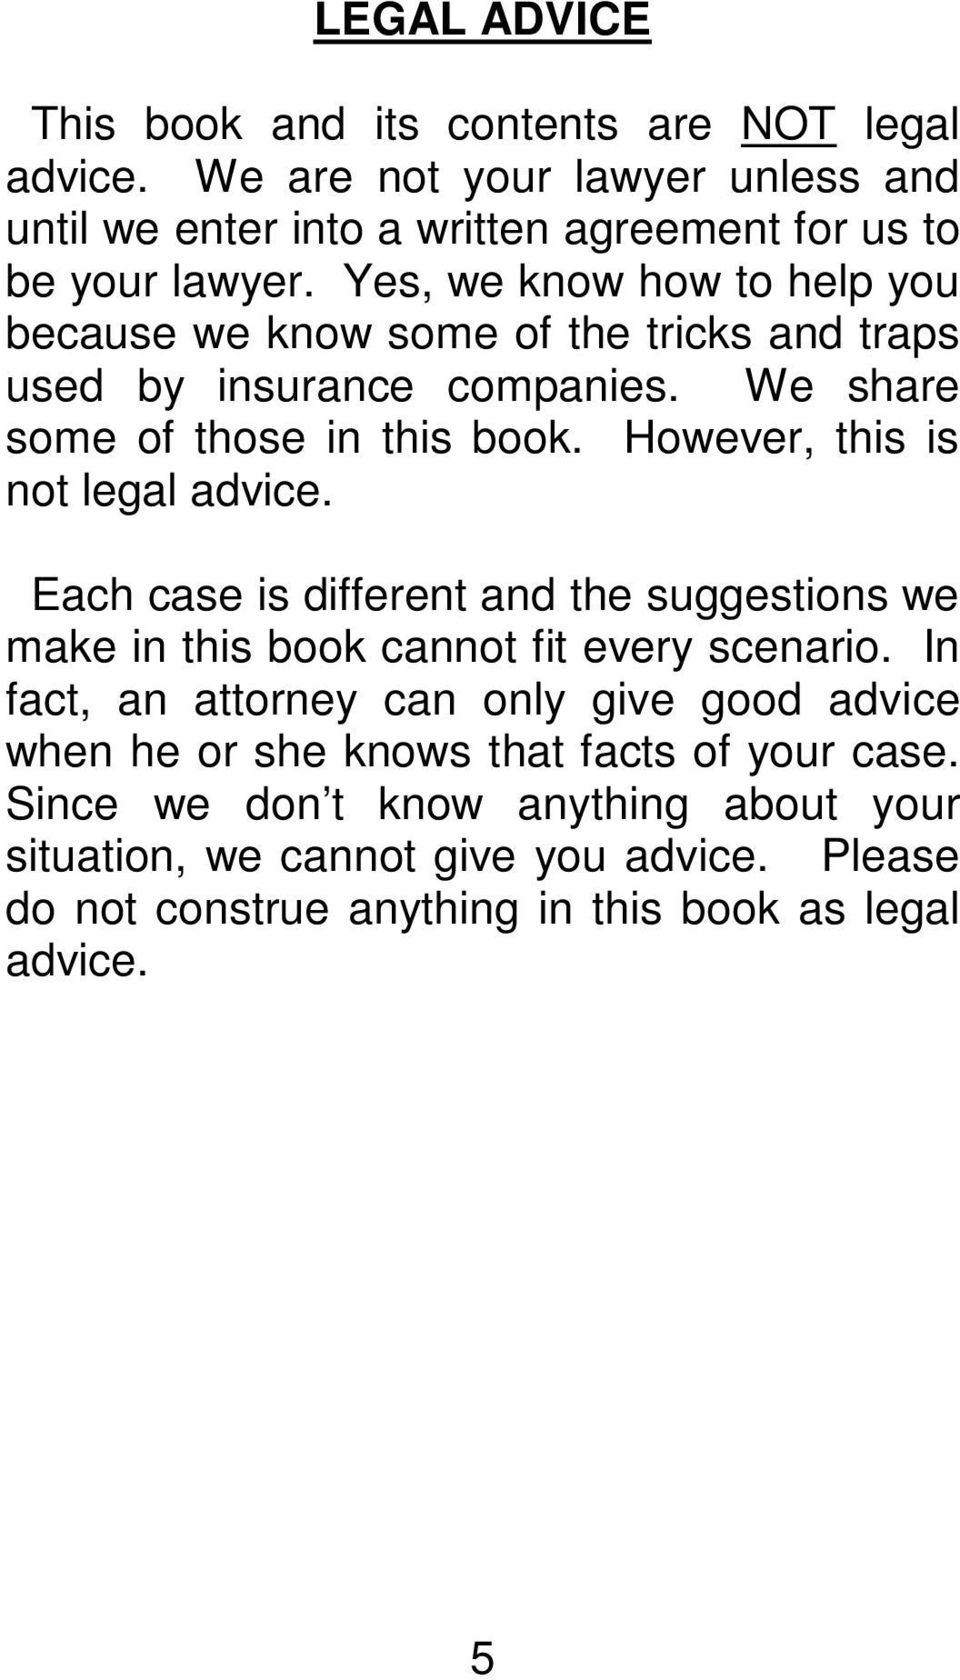 However, this is not legal advice. Each case is different and the suggestions we make in this book cannot fit every scenario.